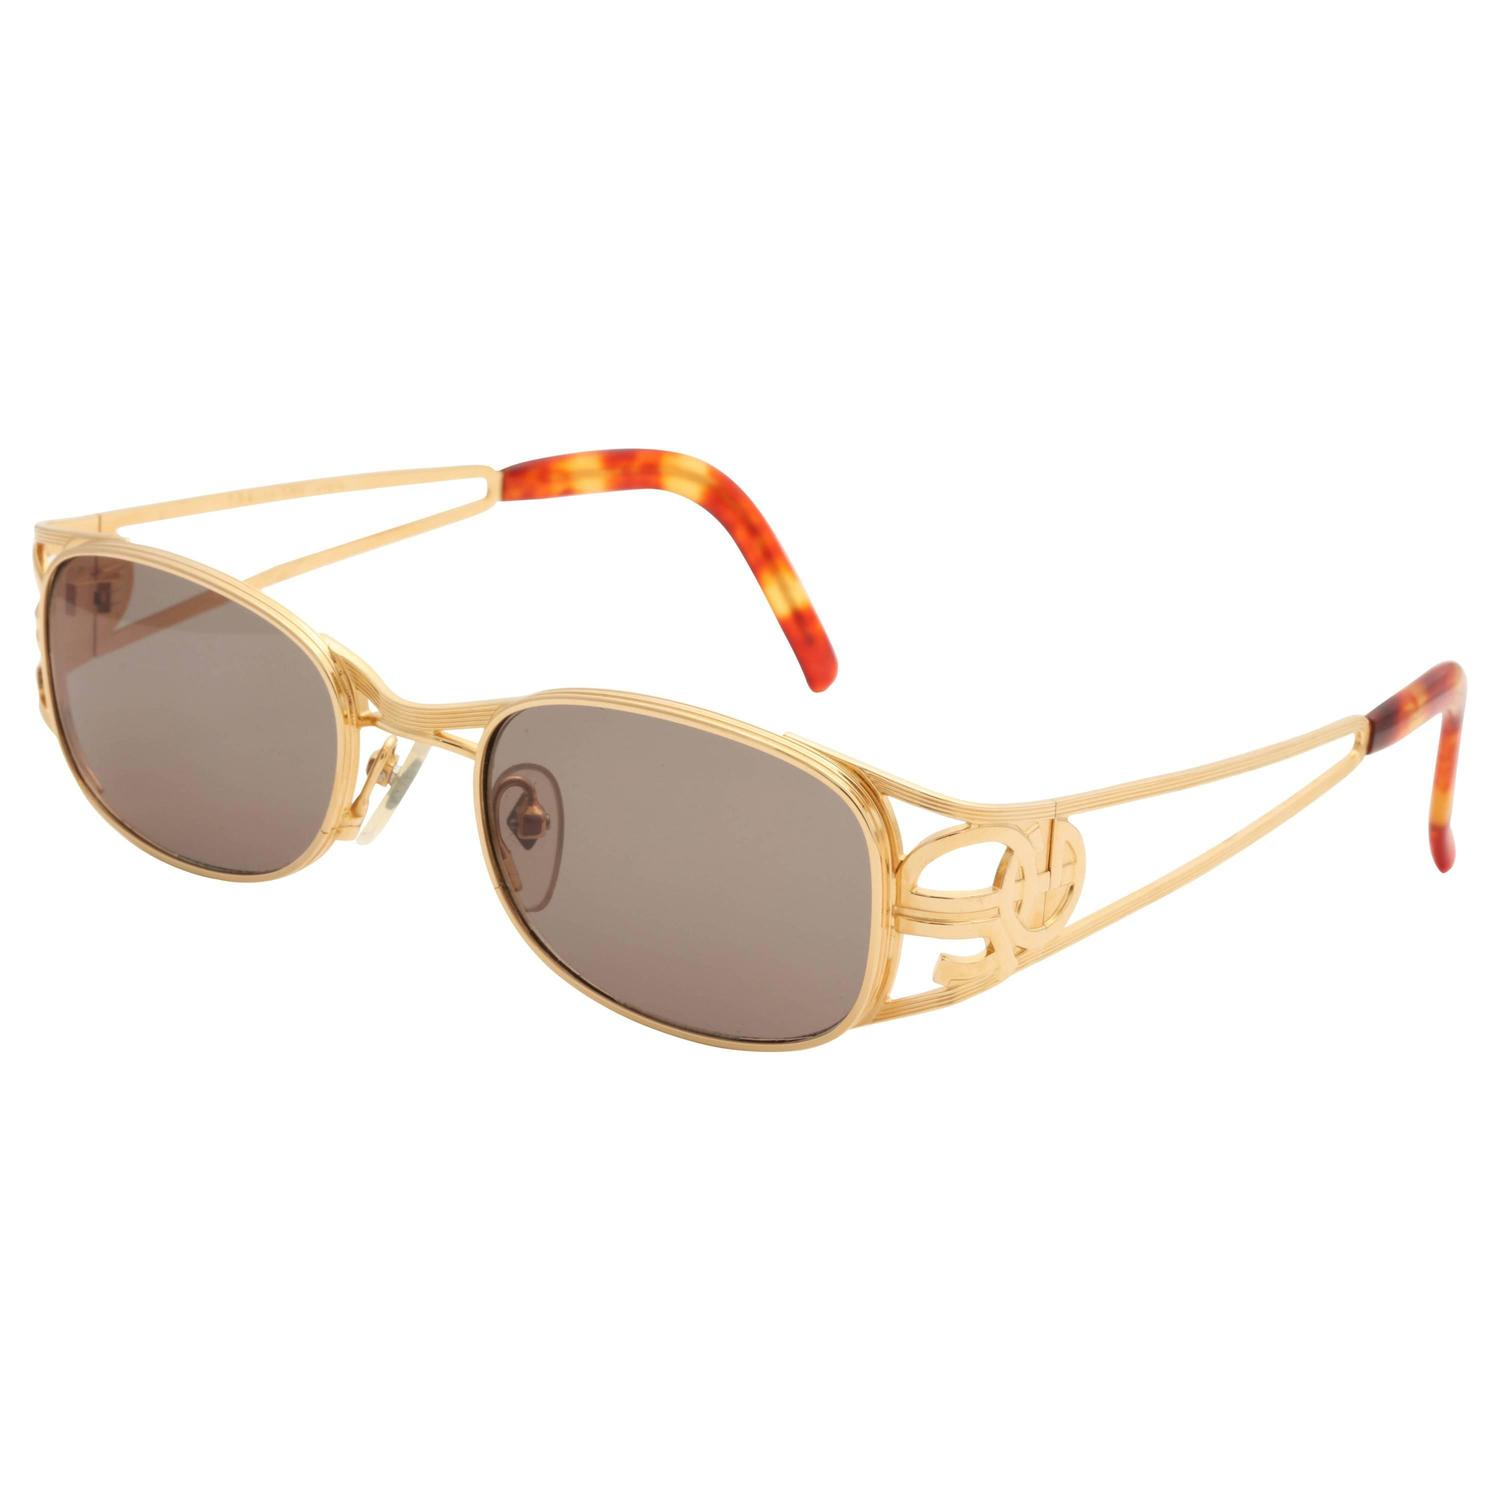 Gaultier Sunglasses  gold vintage jean paul gaultier sunglasses 58 5101 for at 1stdibs